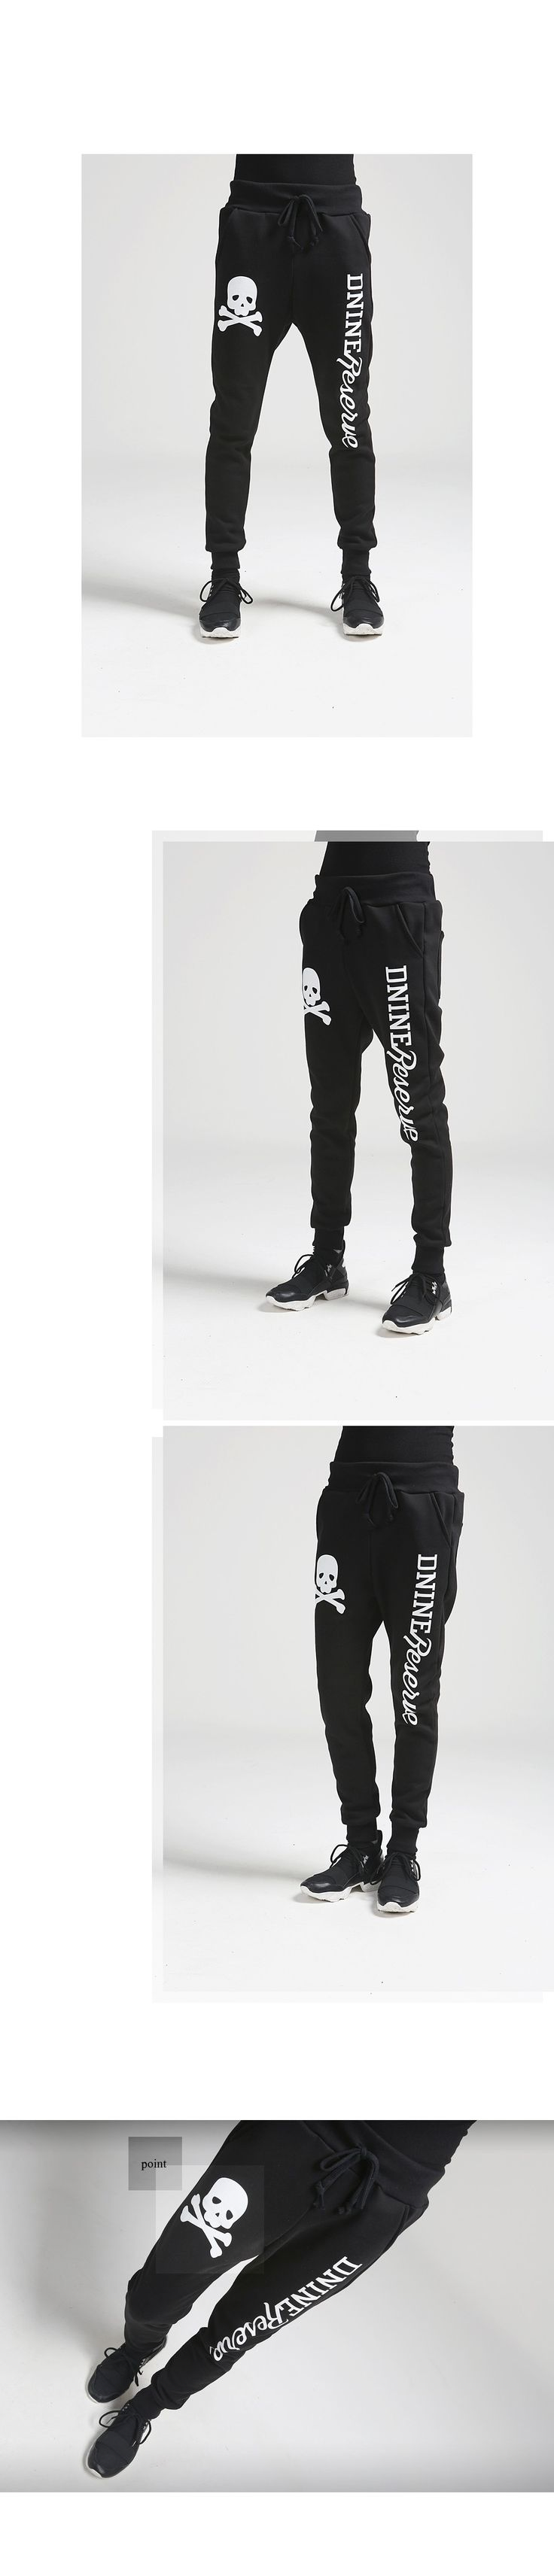 K-POP Men's Fashion Style Store [TOMSYTLE] Skull Cross Trainers PT / Size : M,L / Price : 43.48 USD #dailylook #dailyfashion #casuallook #bottom #pants #trainingpants #unique #TOMSTYLE #OOTD http://en.tomstyle.net/